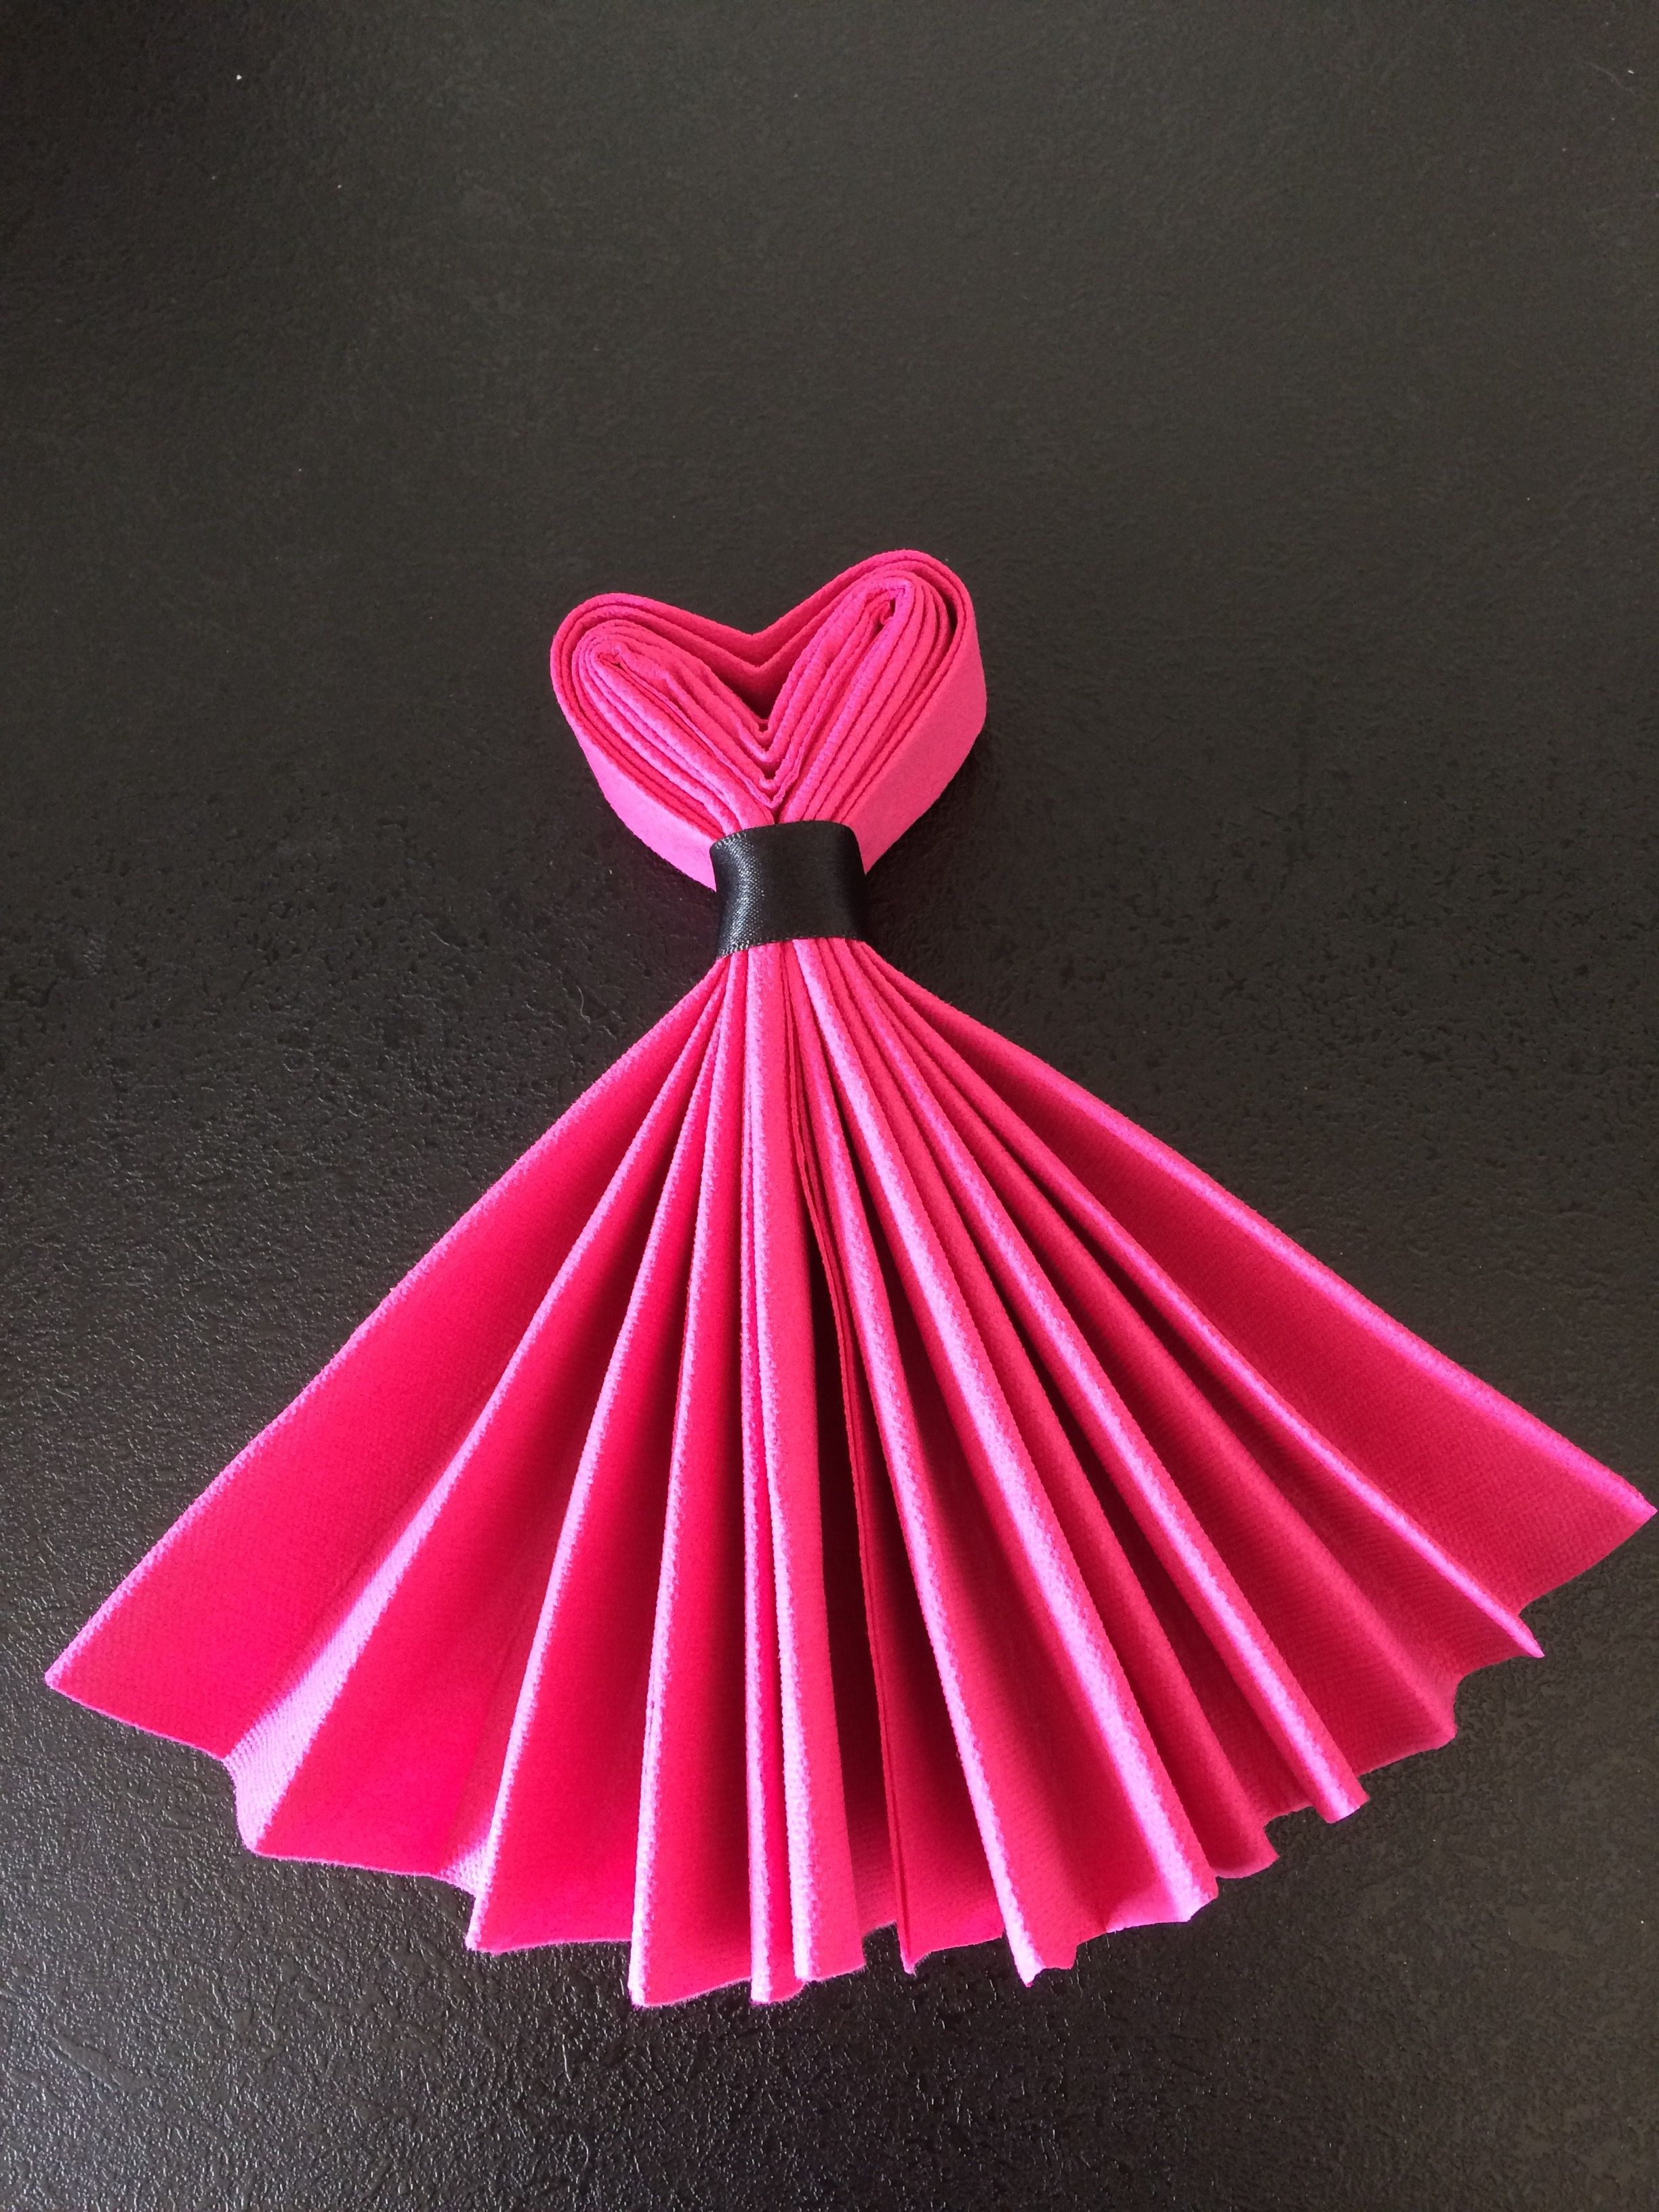 Party dress napkins pliage serviettes pinterest - Pliage de serviettes de table en papier ...